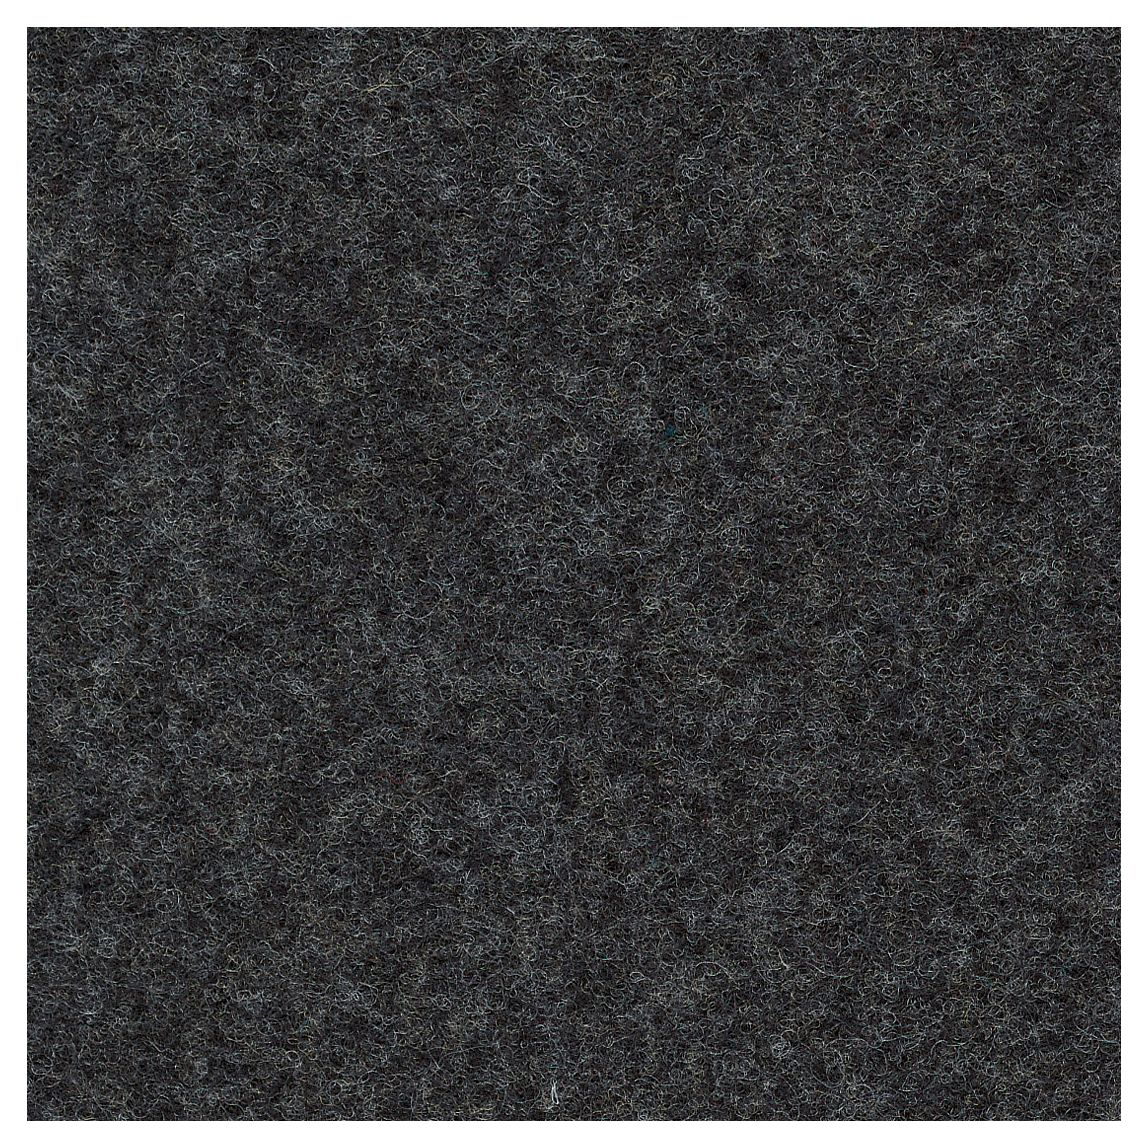 Wooly Charcoal Flannel Swatch